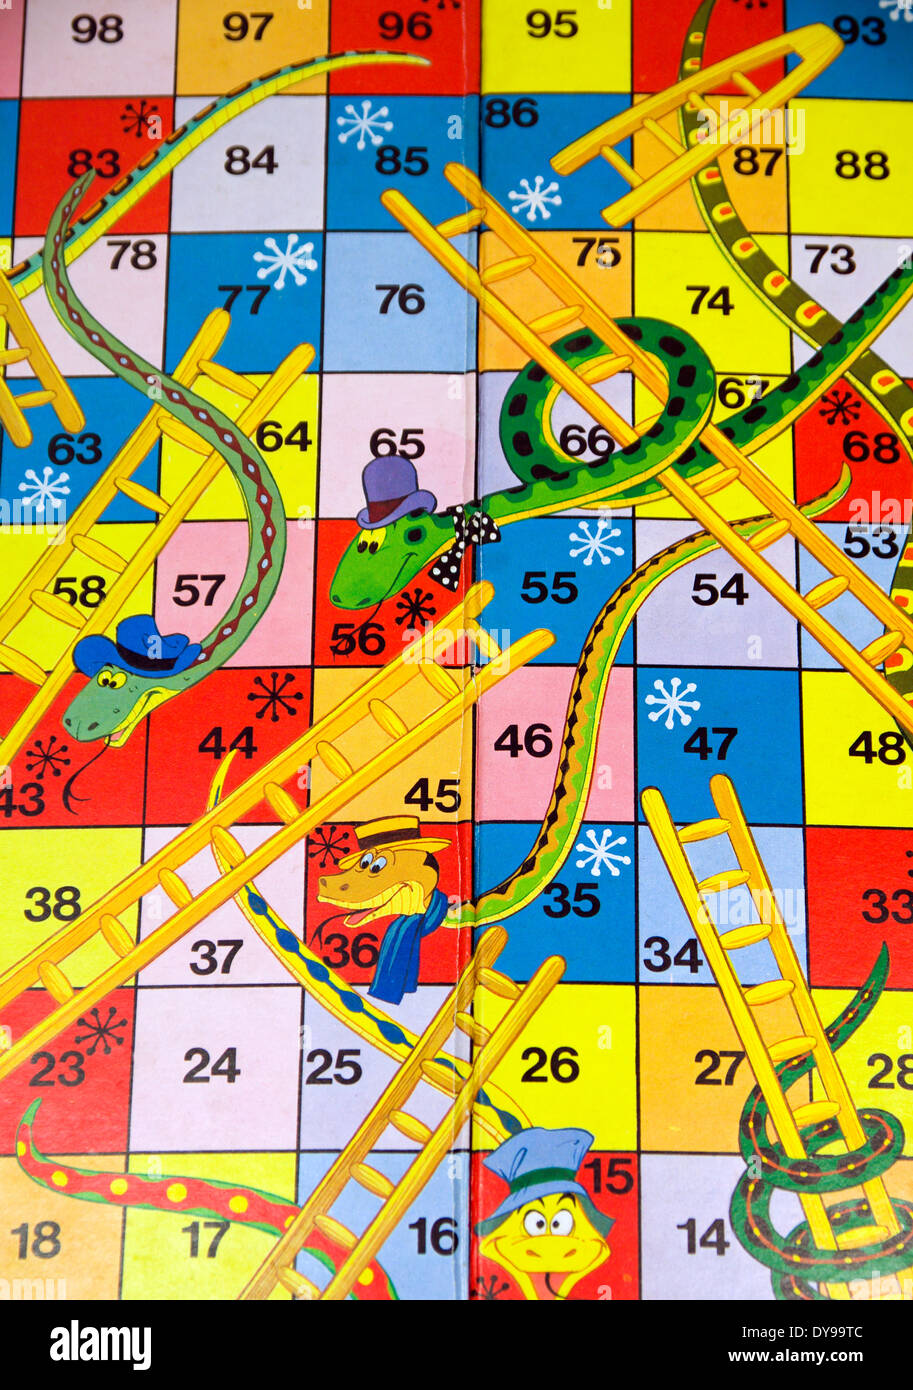 Snakes and Ladders board game Stock Photo, Royalty Free Image ...